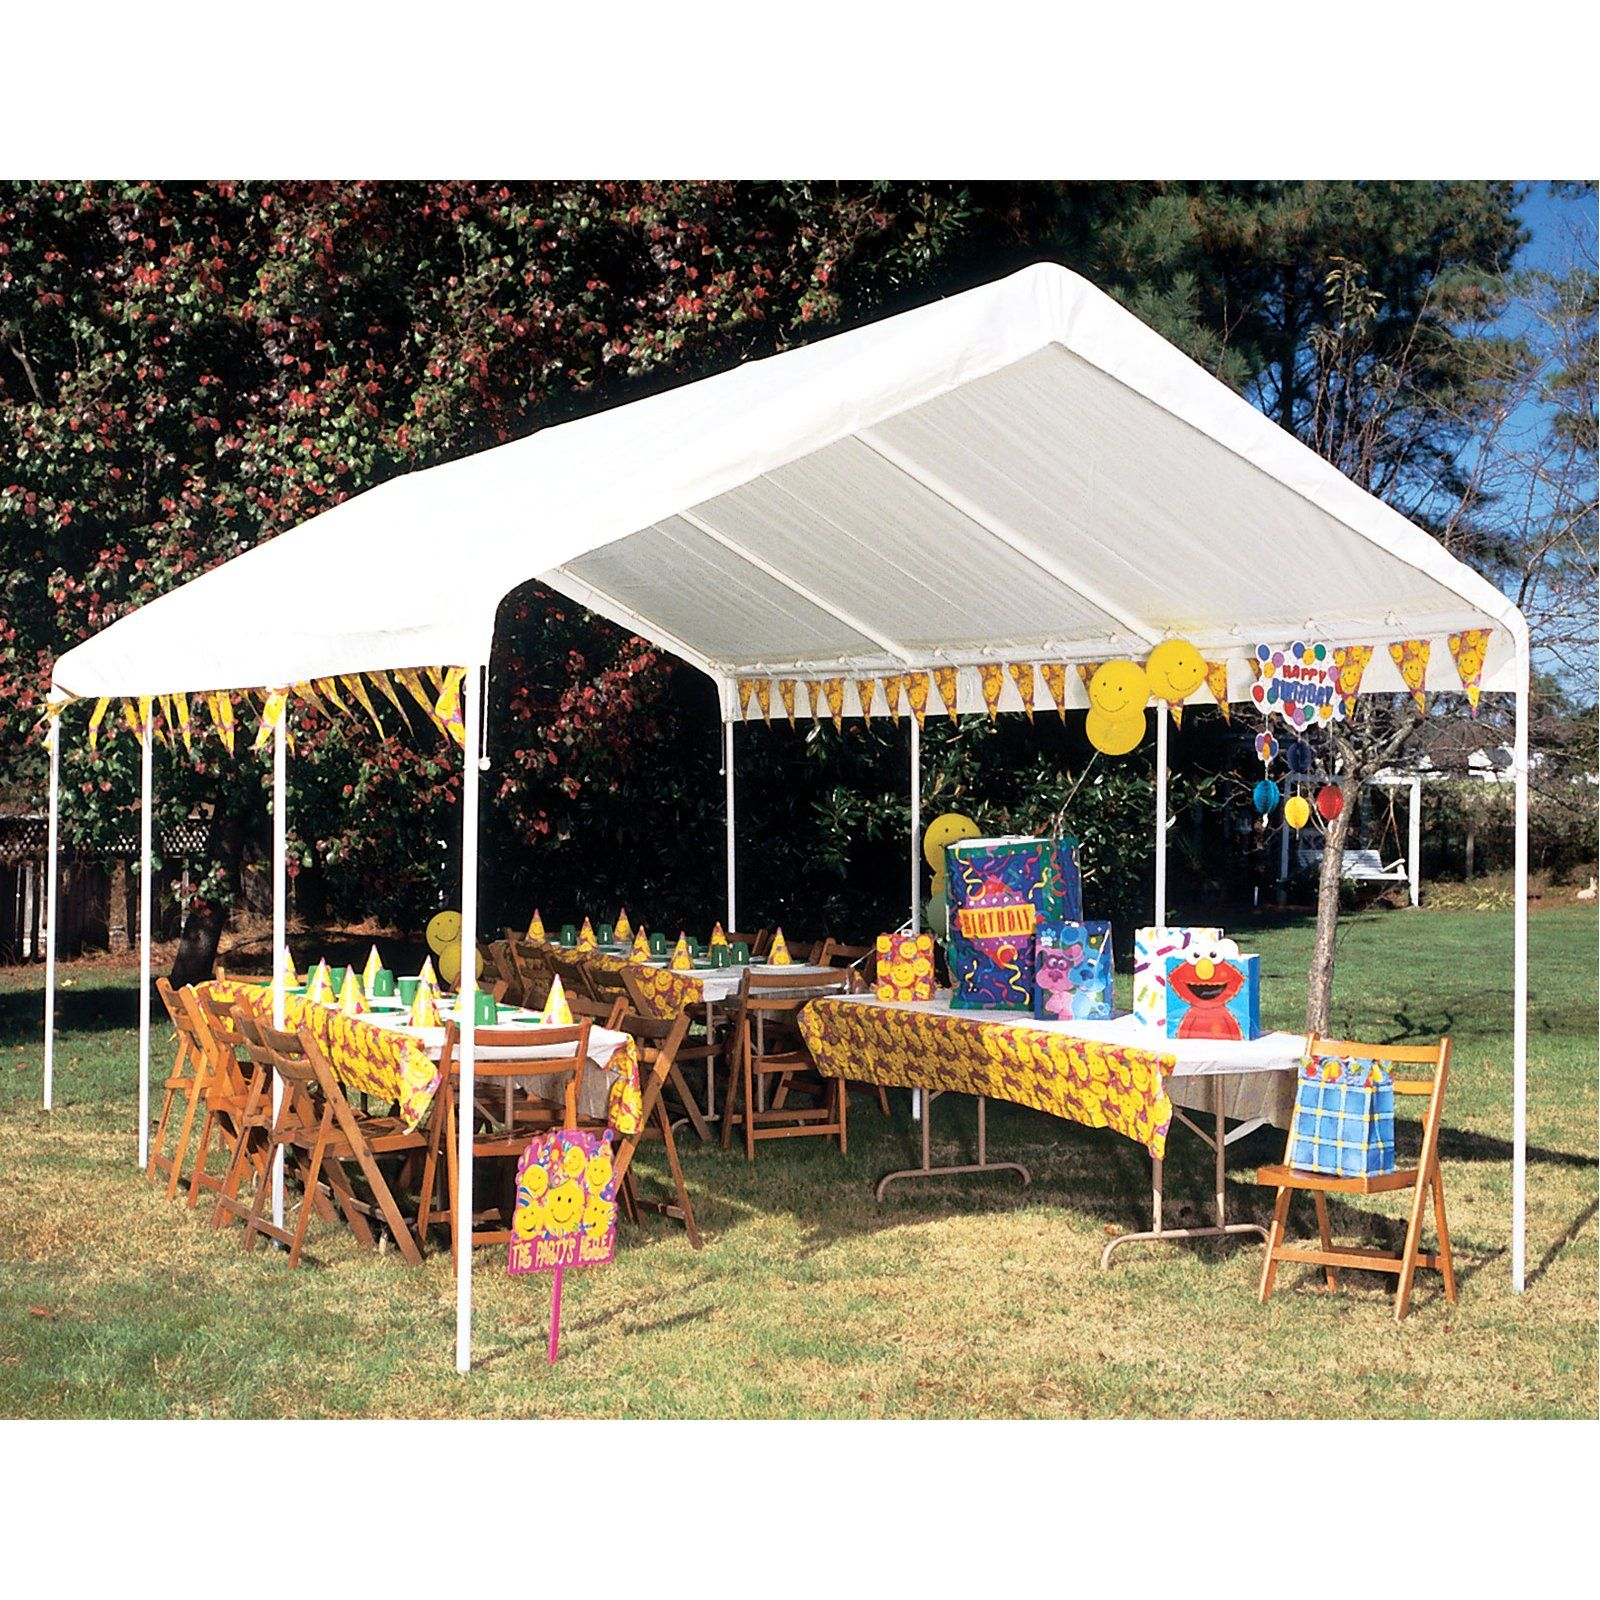 King Canopy 10 X 20 Ft Drawstring Replacement Cover White Canopy Canopy Tent Outdoor Canopy Tent